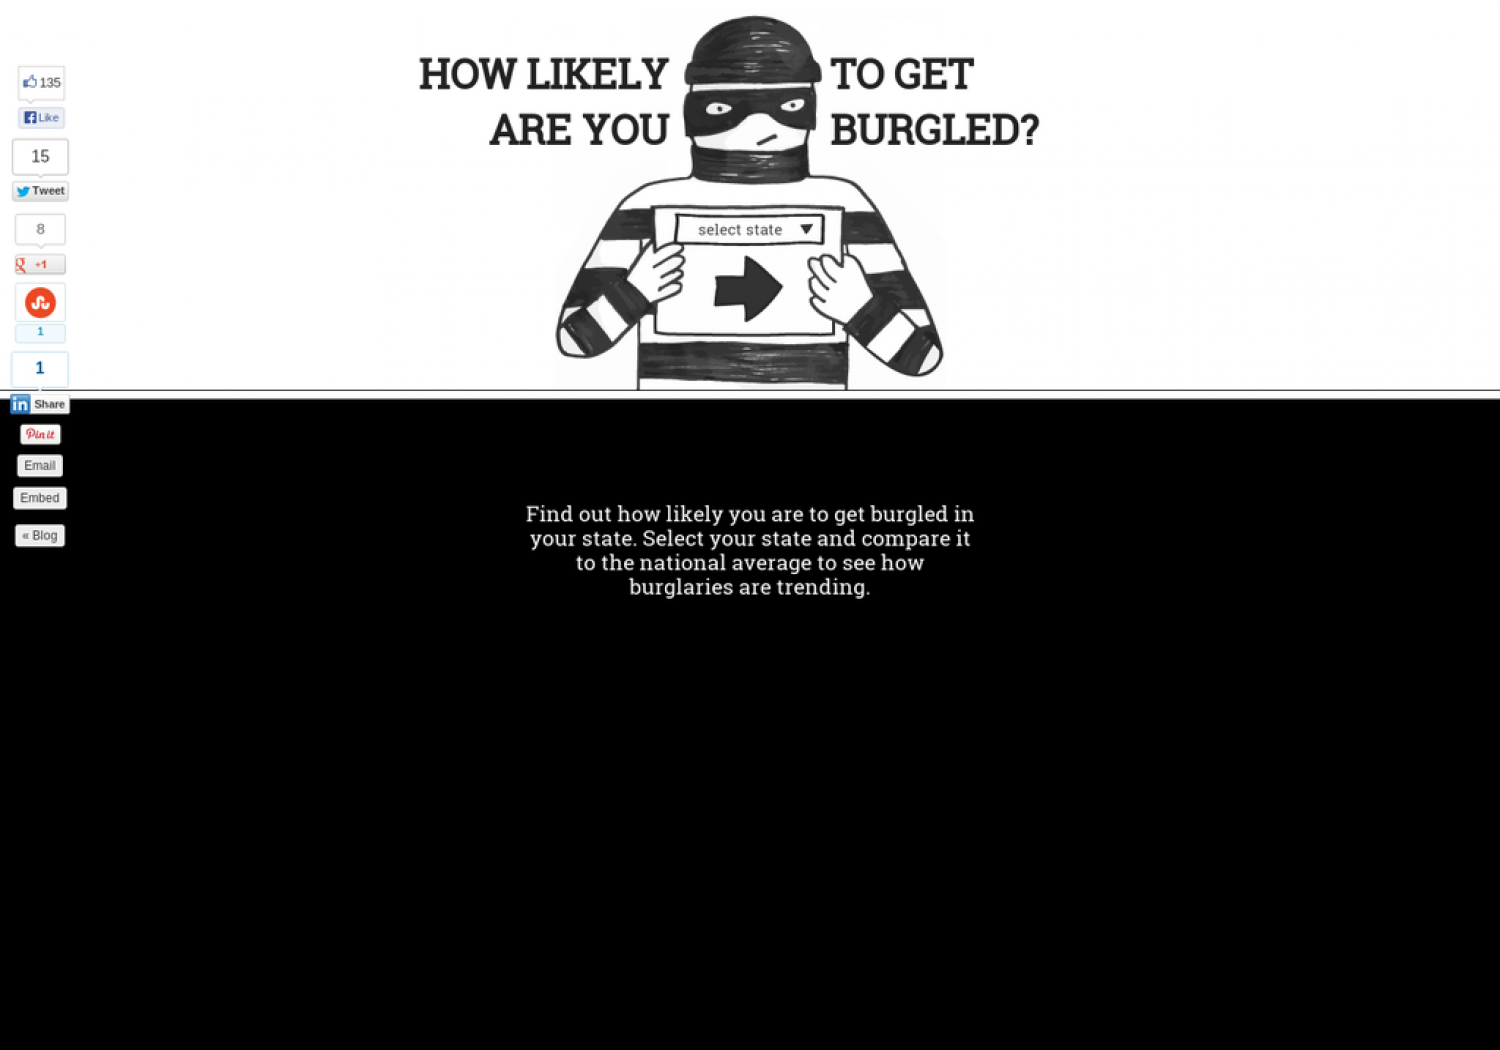 How Likely Are You To Get Burgled? Infographic